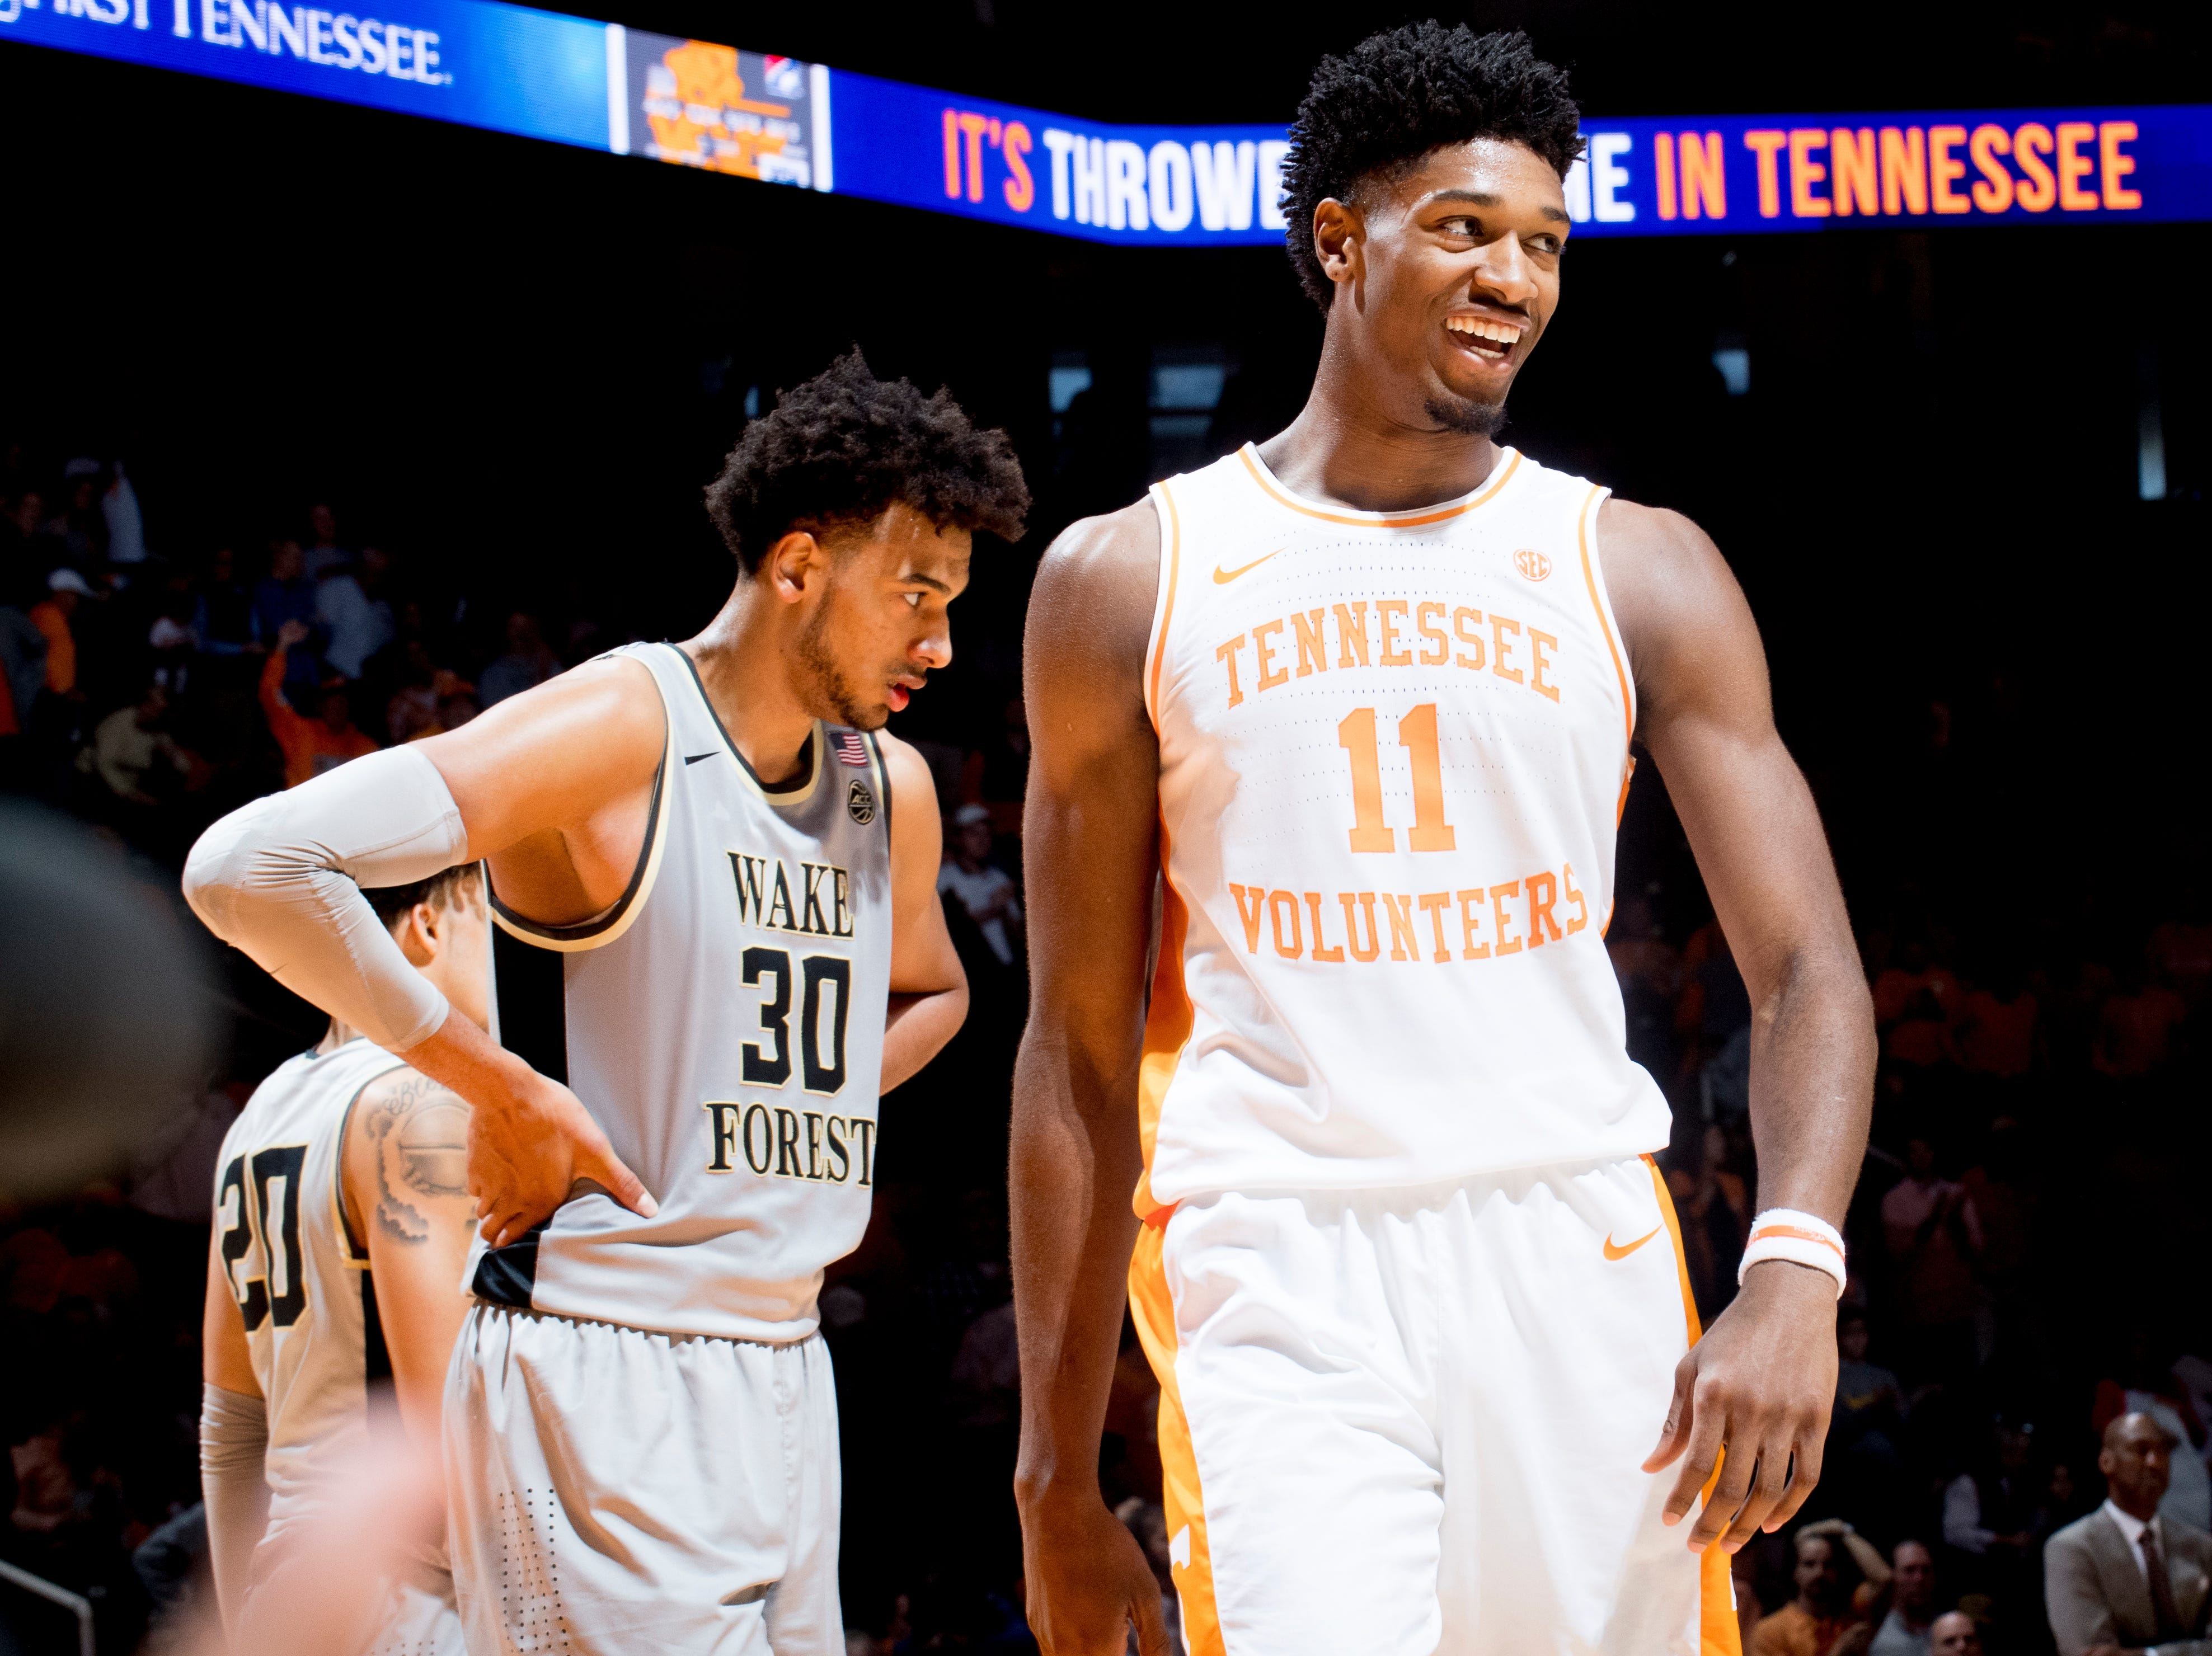 Tennessee forward Kyle Alexander (11) celebrates Tennessee's 83-64 win over Wake Forest at Thompson-Boling Arena in Knoxville, Tennessee on Saturday, December 22, 2018.